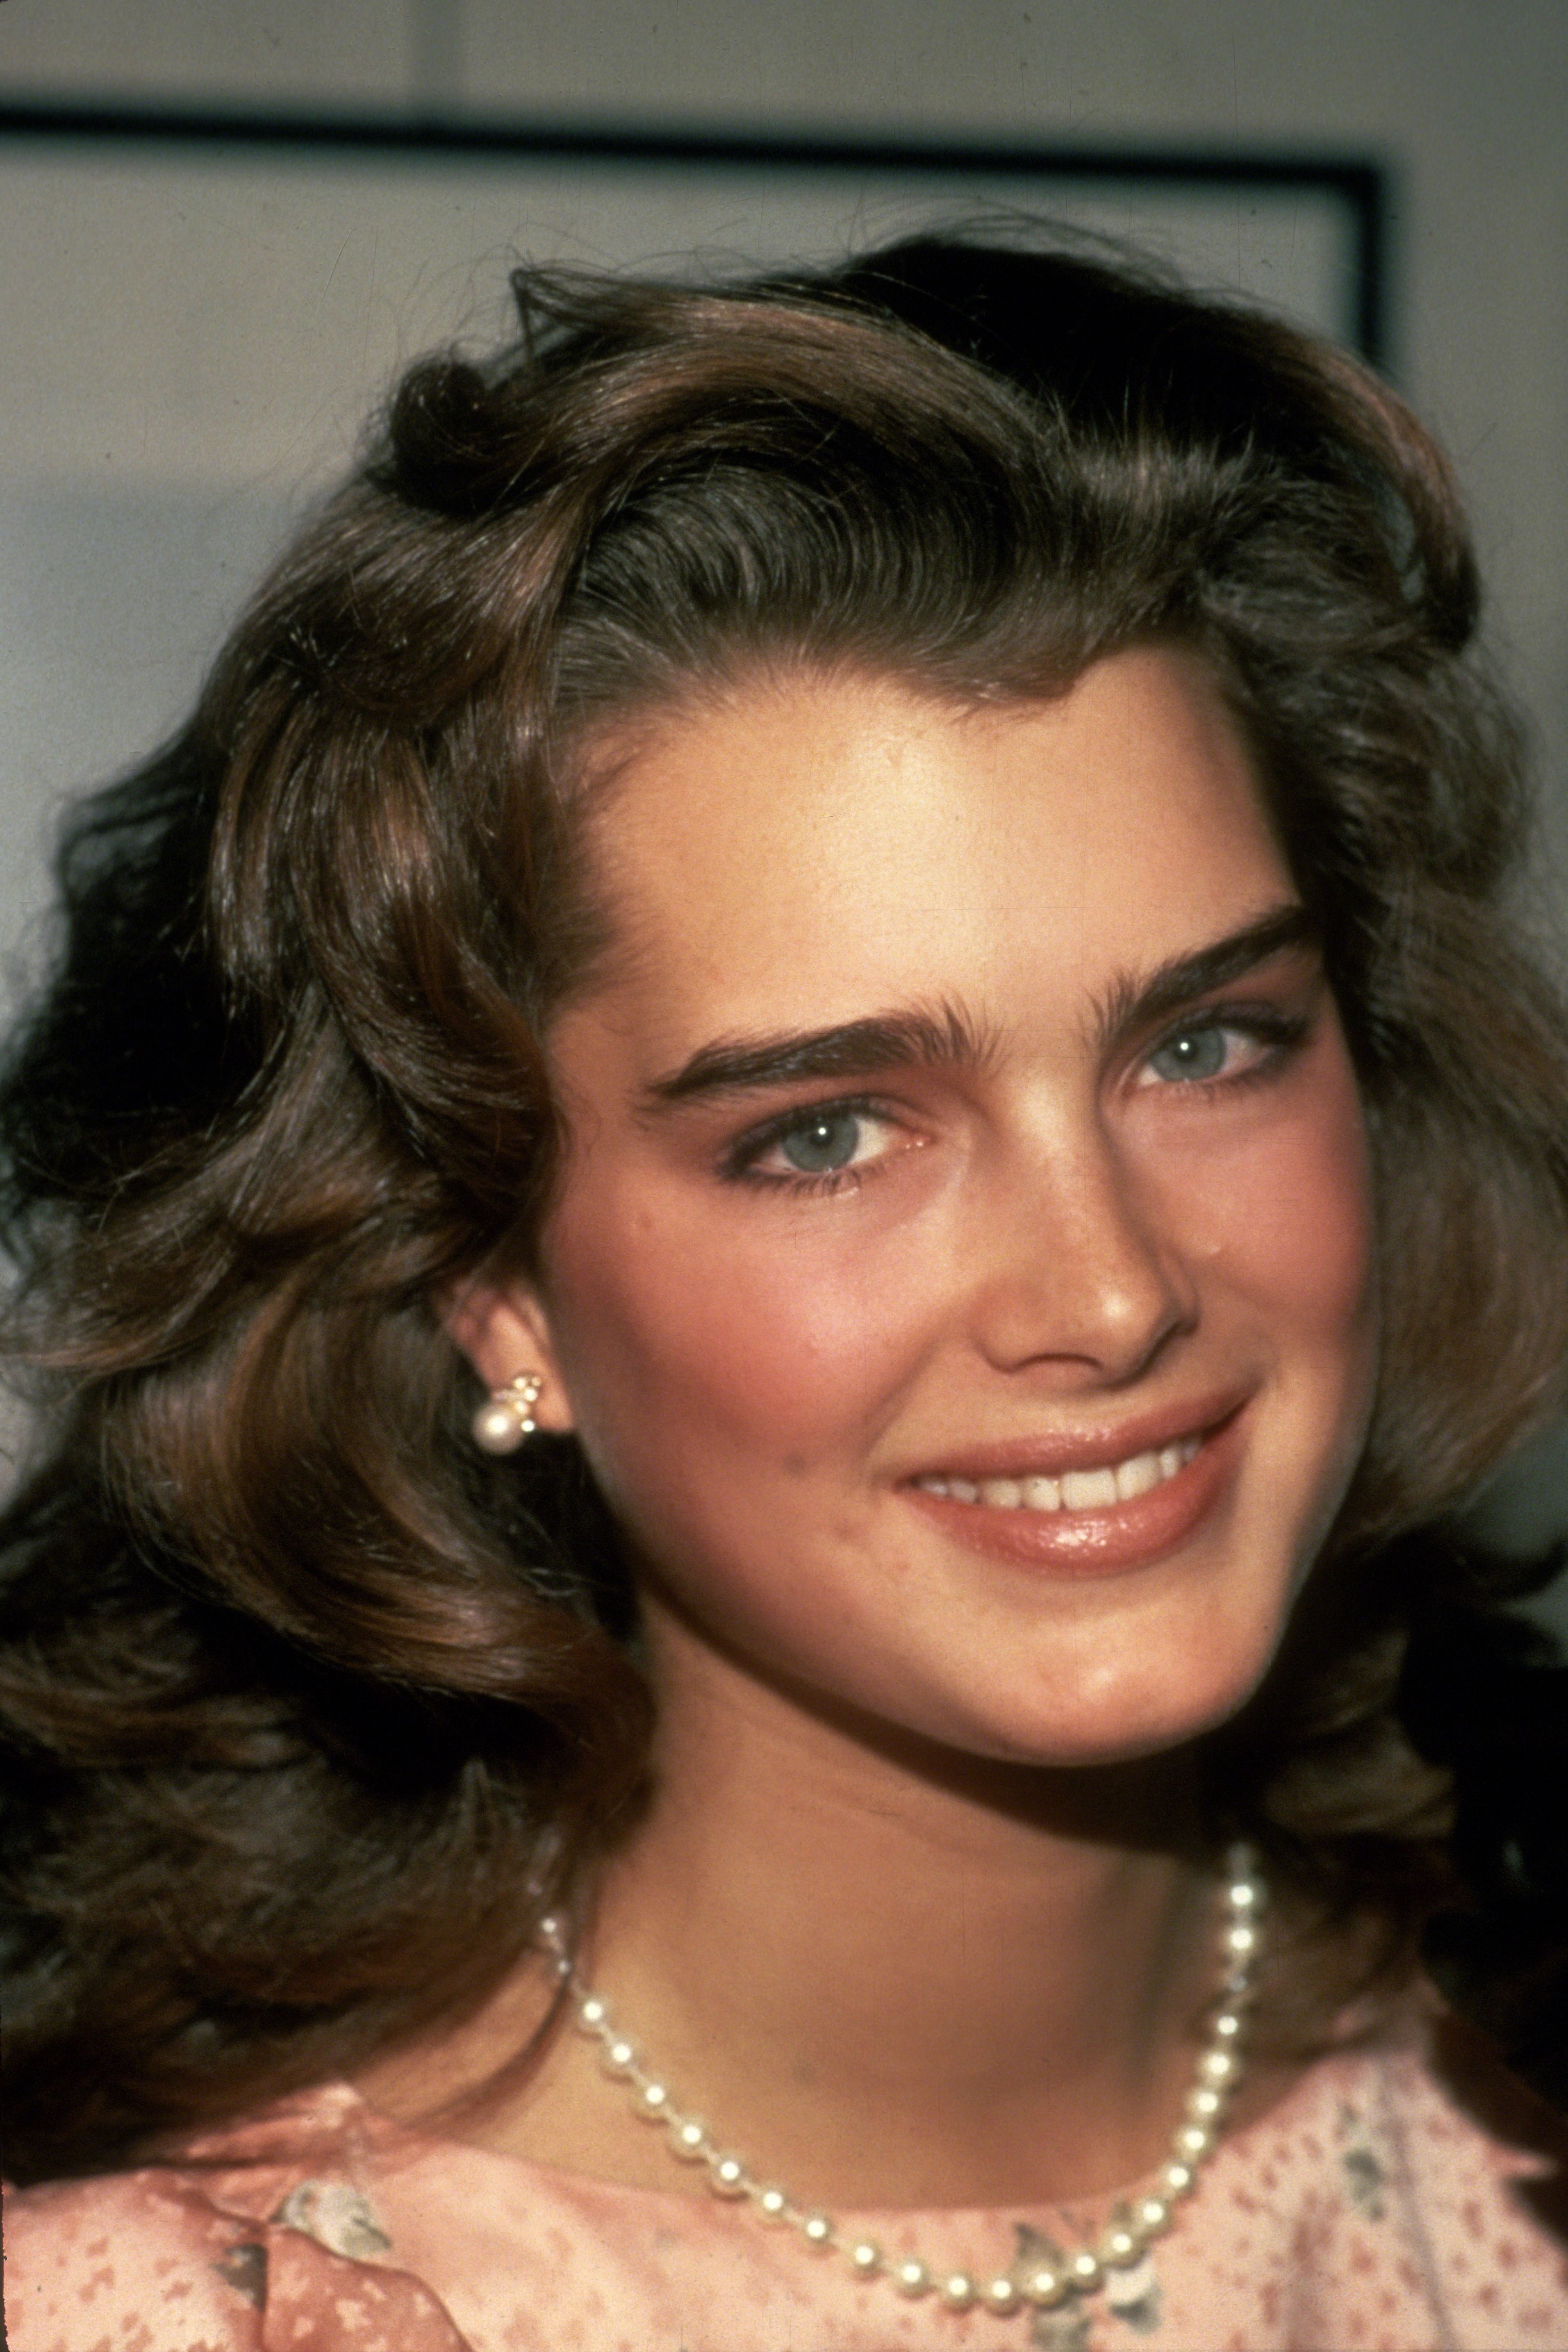 <p>Brooke Shields's naturally bushy brows inspired women to put down the tweezers.</p>